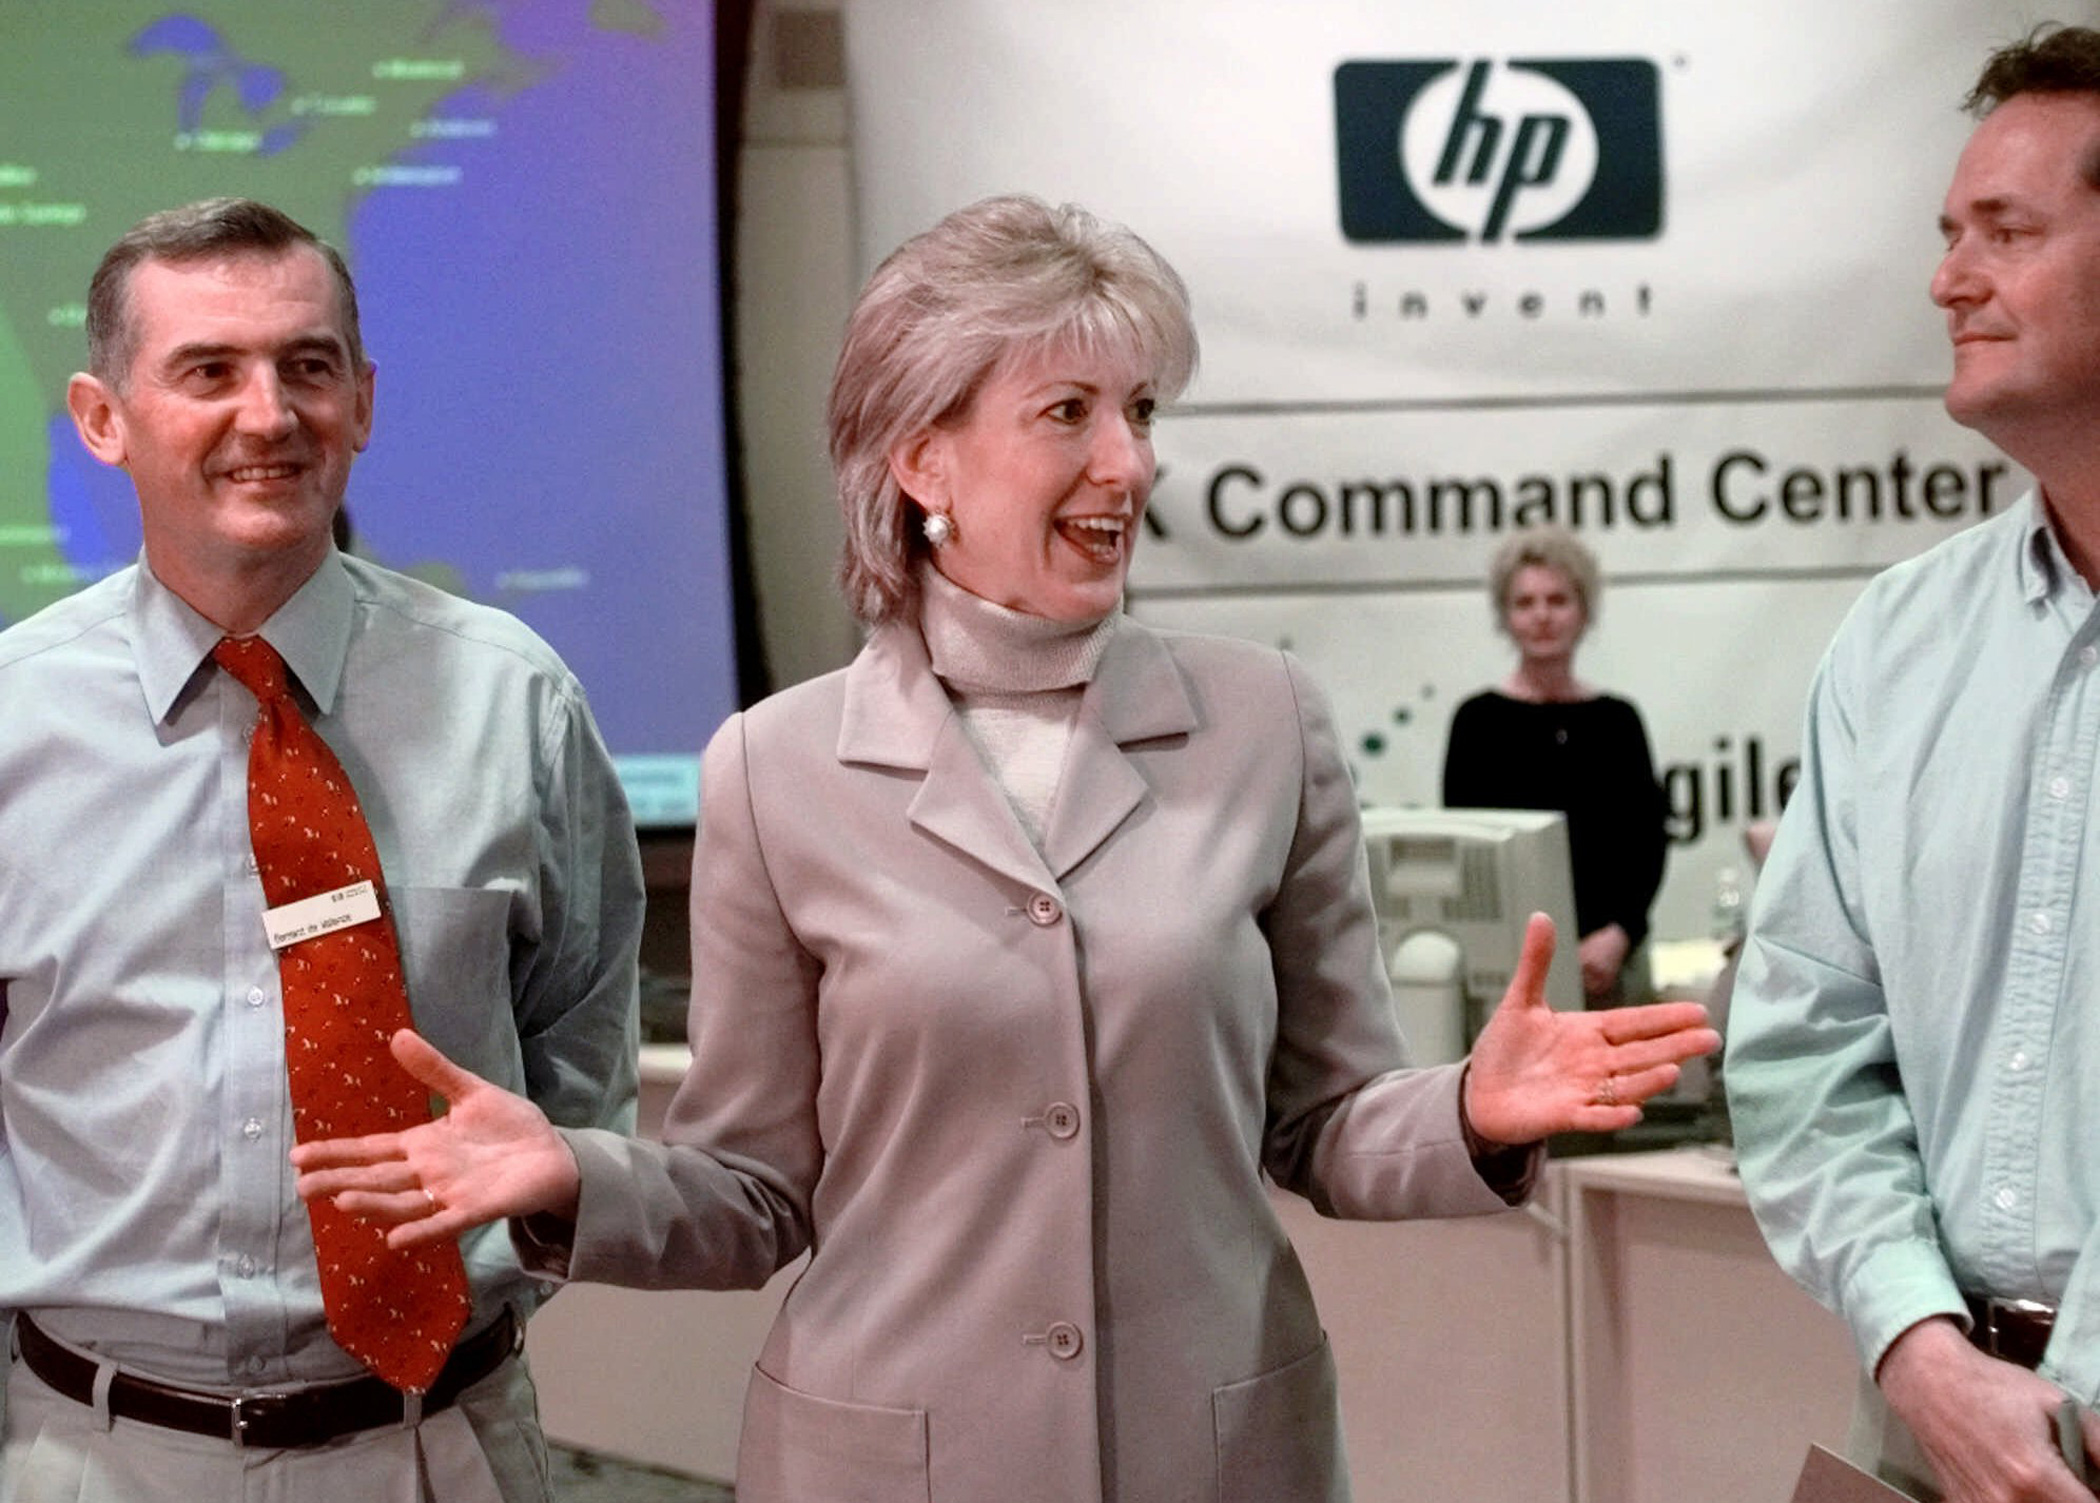 Carly Fiorina during a news conference on Dec. 31, 1999 at HP headquarters in Palo Alto, Calif.